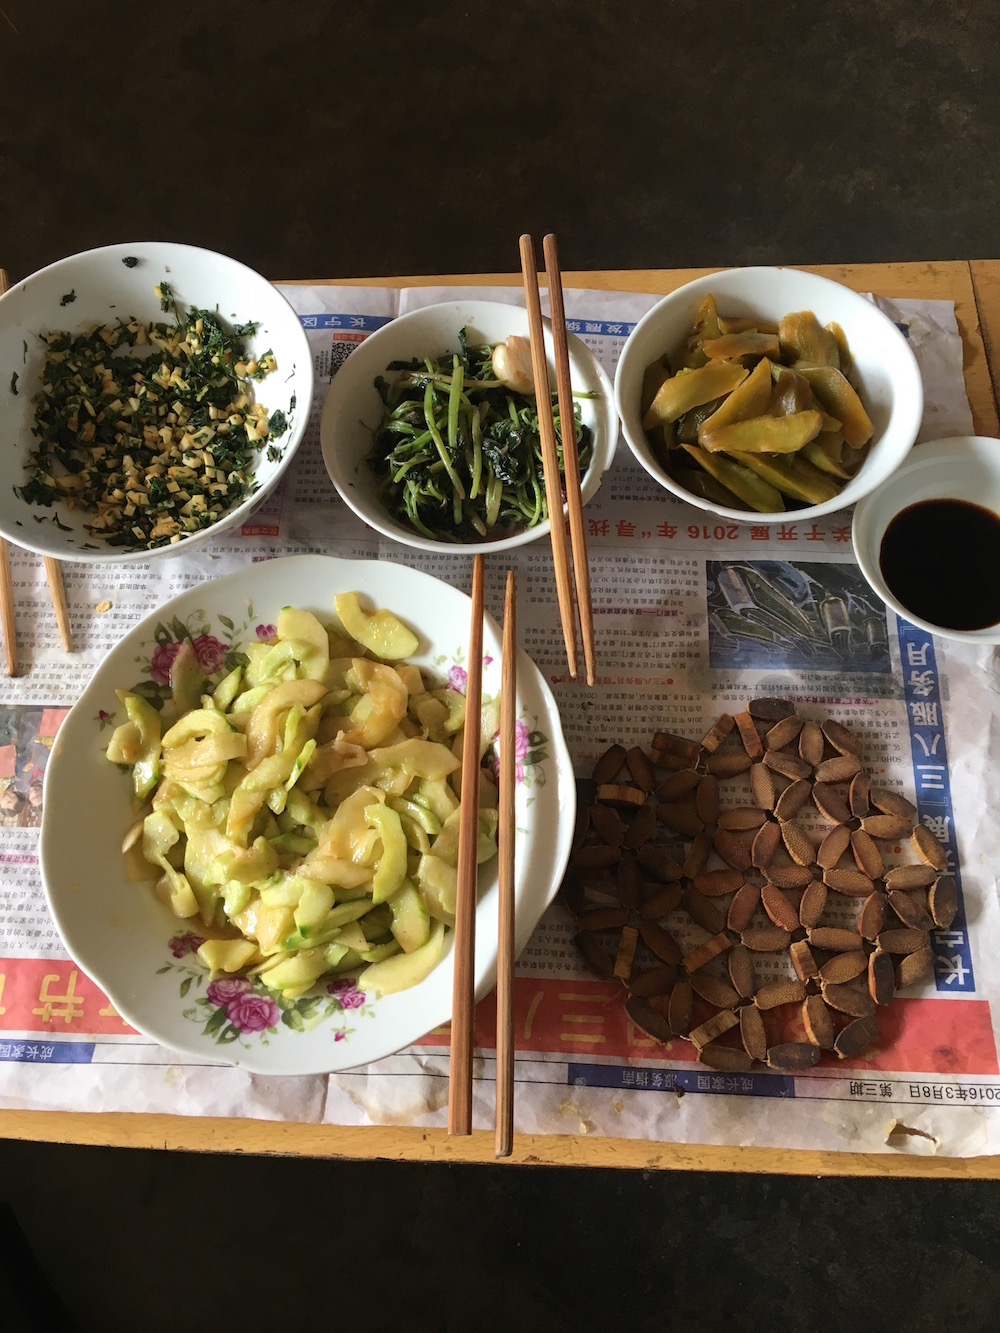 These were the side dishes that went with the porridge. Here we have tofu, string beans, pickled cucumber, and watermelon skin (Listed respectively from top left).